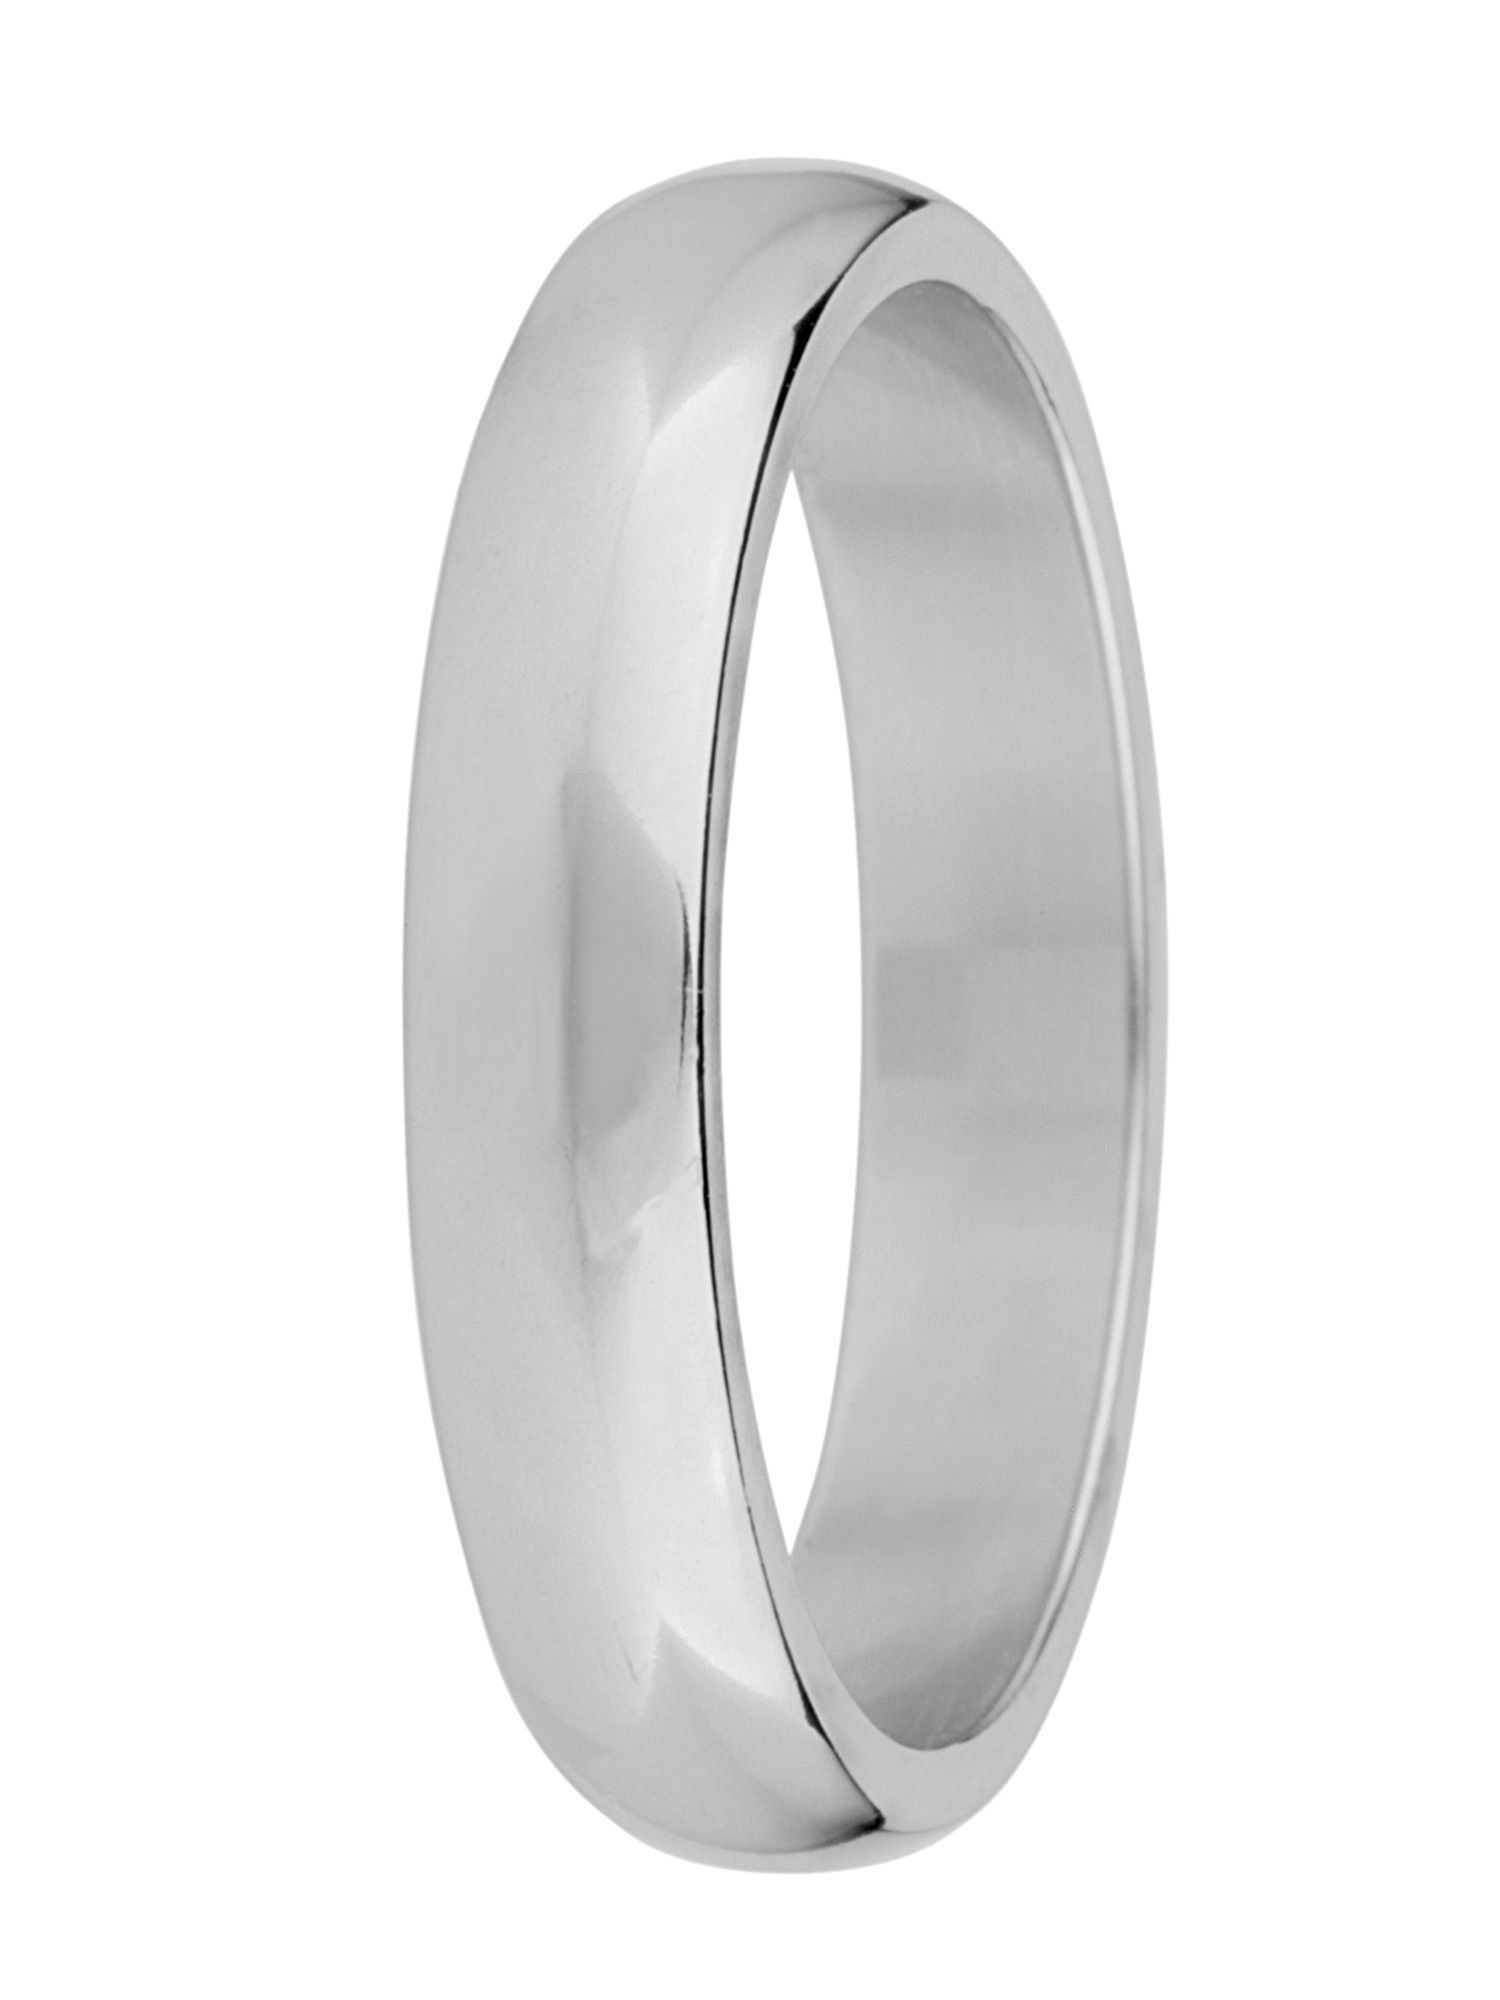 Brides 18ct gold heavy court 4mm wedding ring - White Gold